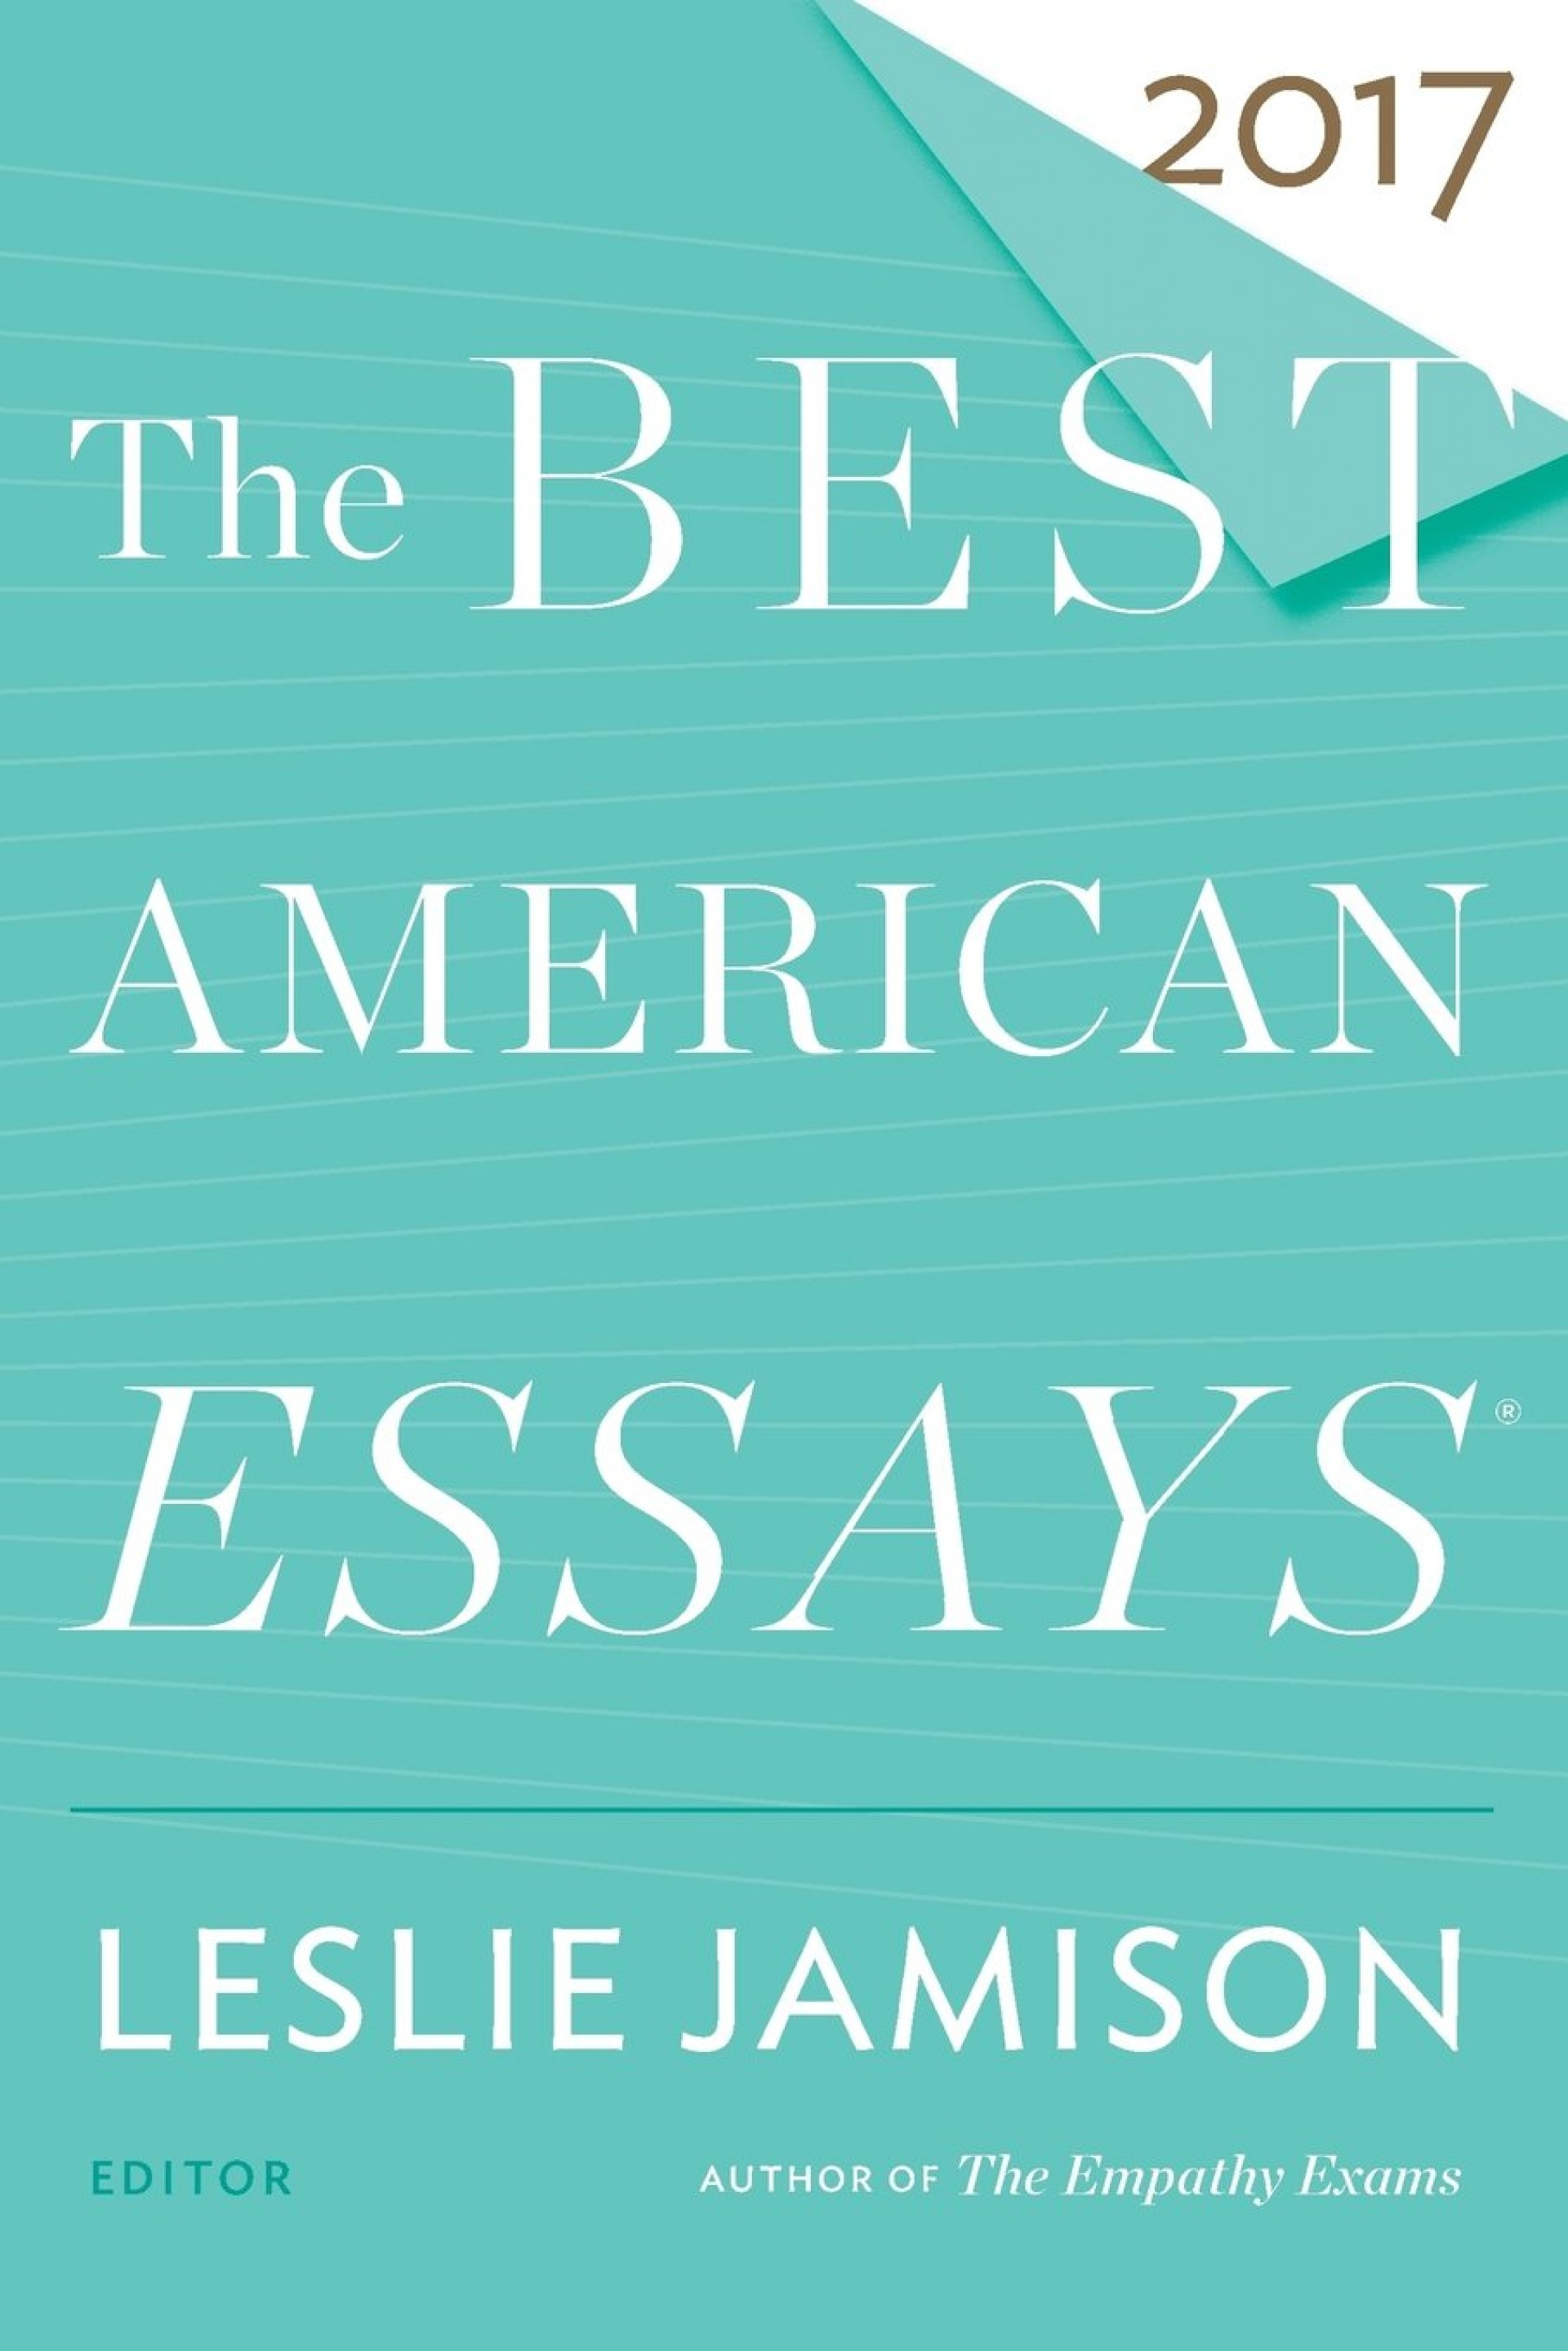 001 61tzl Nruvl Essay Example Best American Striking Essays 2017 Table Of Contents The Century Pdf 1920